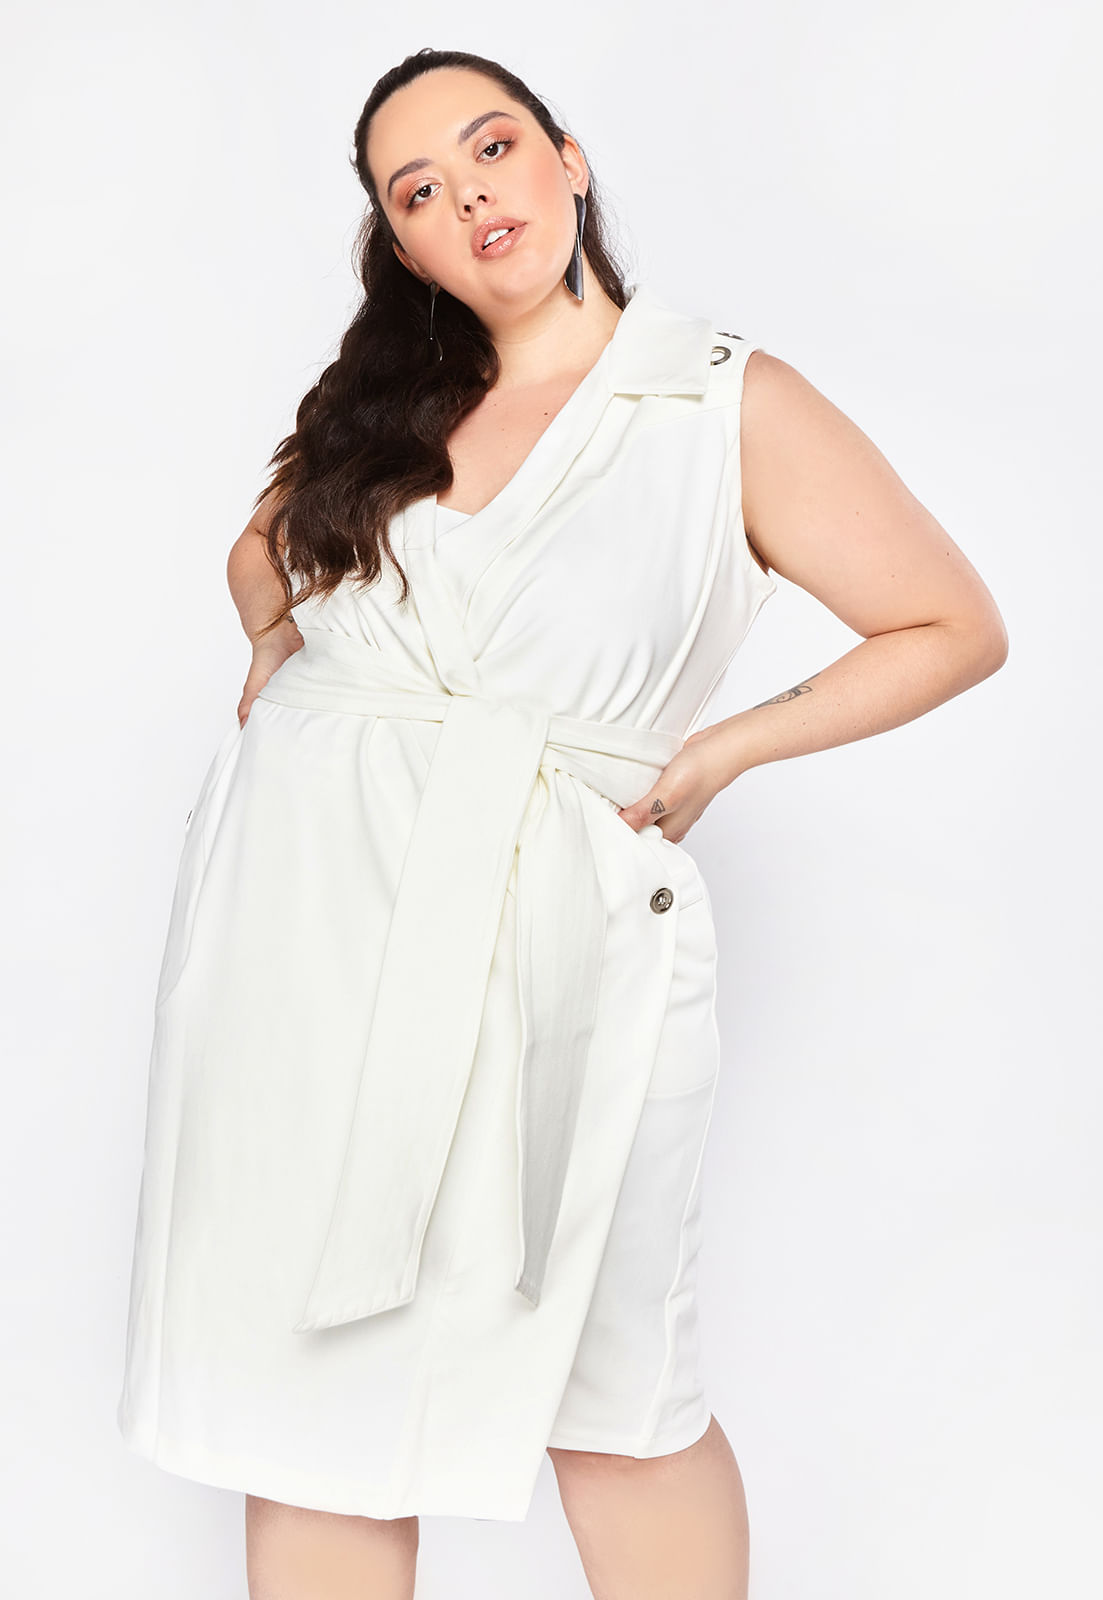 005_Vestido_Plus_Size_Liso_Off_White_2